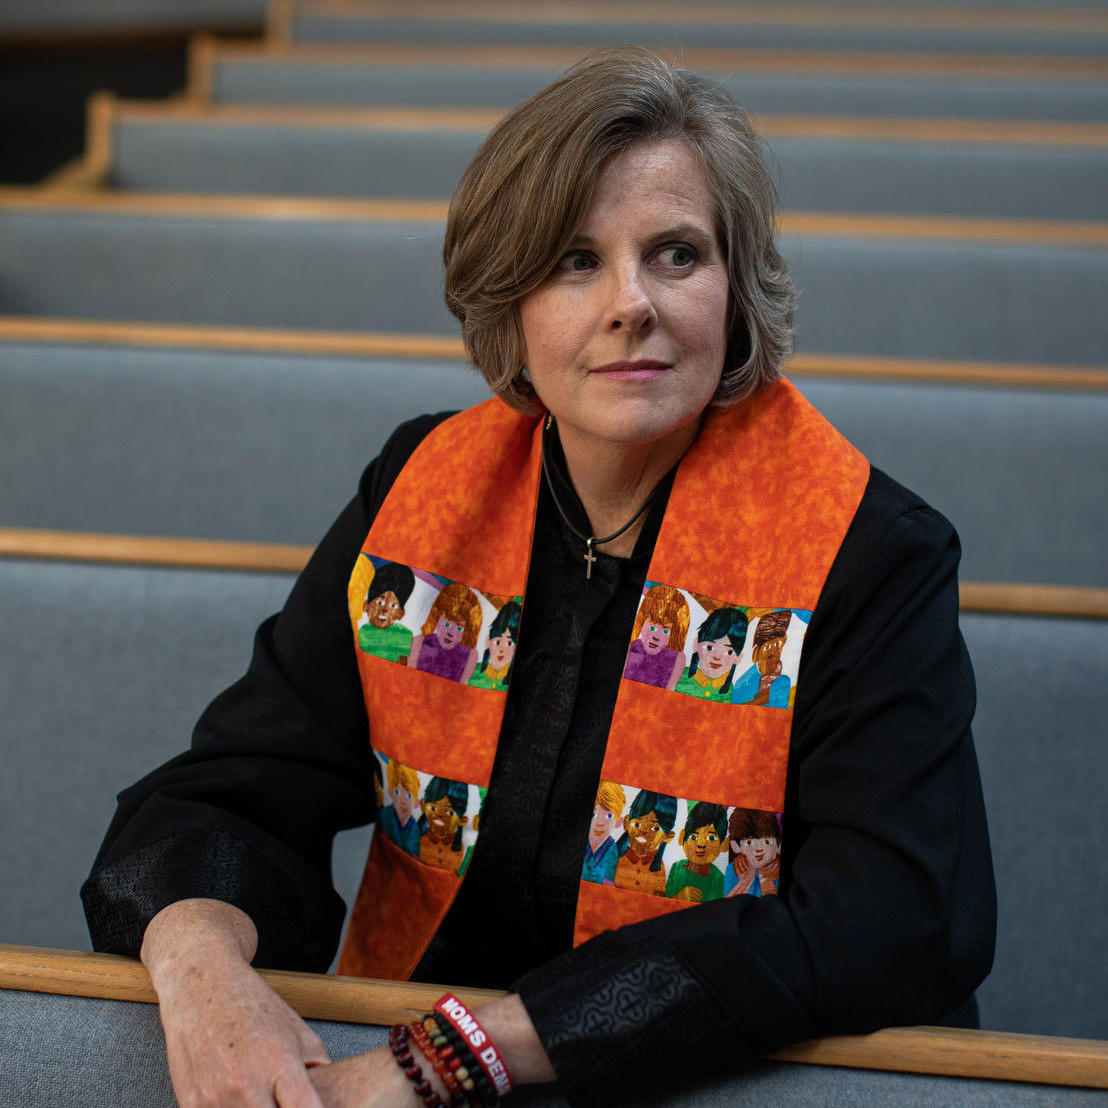 First Ordained Presbyterian Minister Of Gun Violence Prevention To Speak In St. Louis